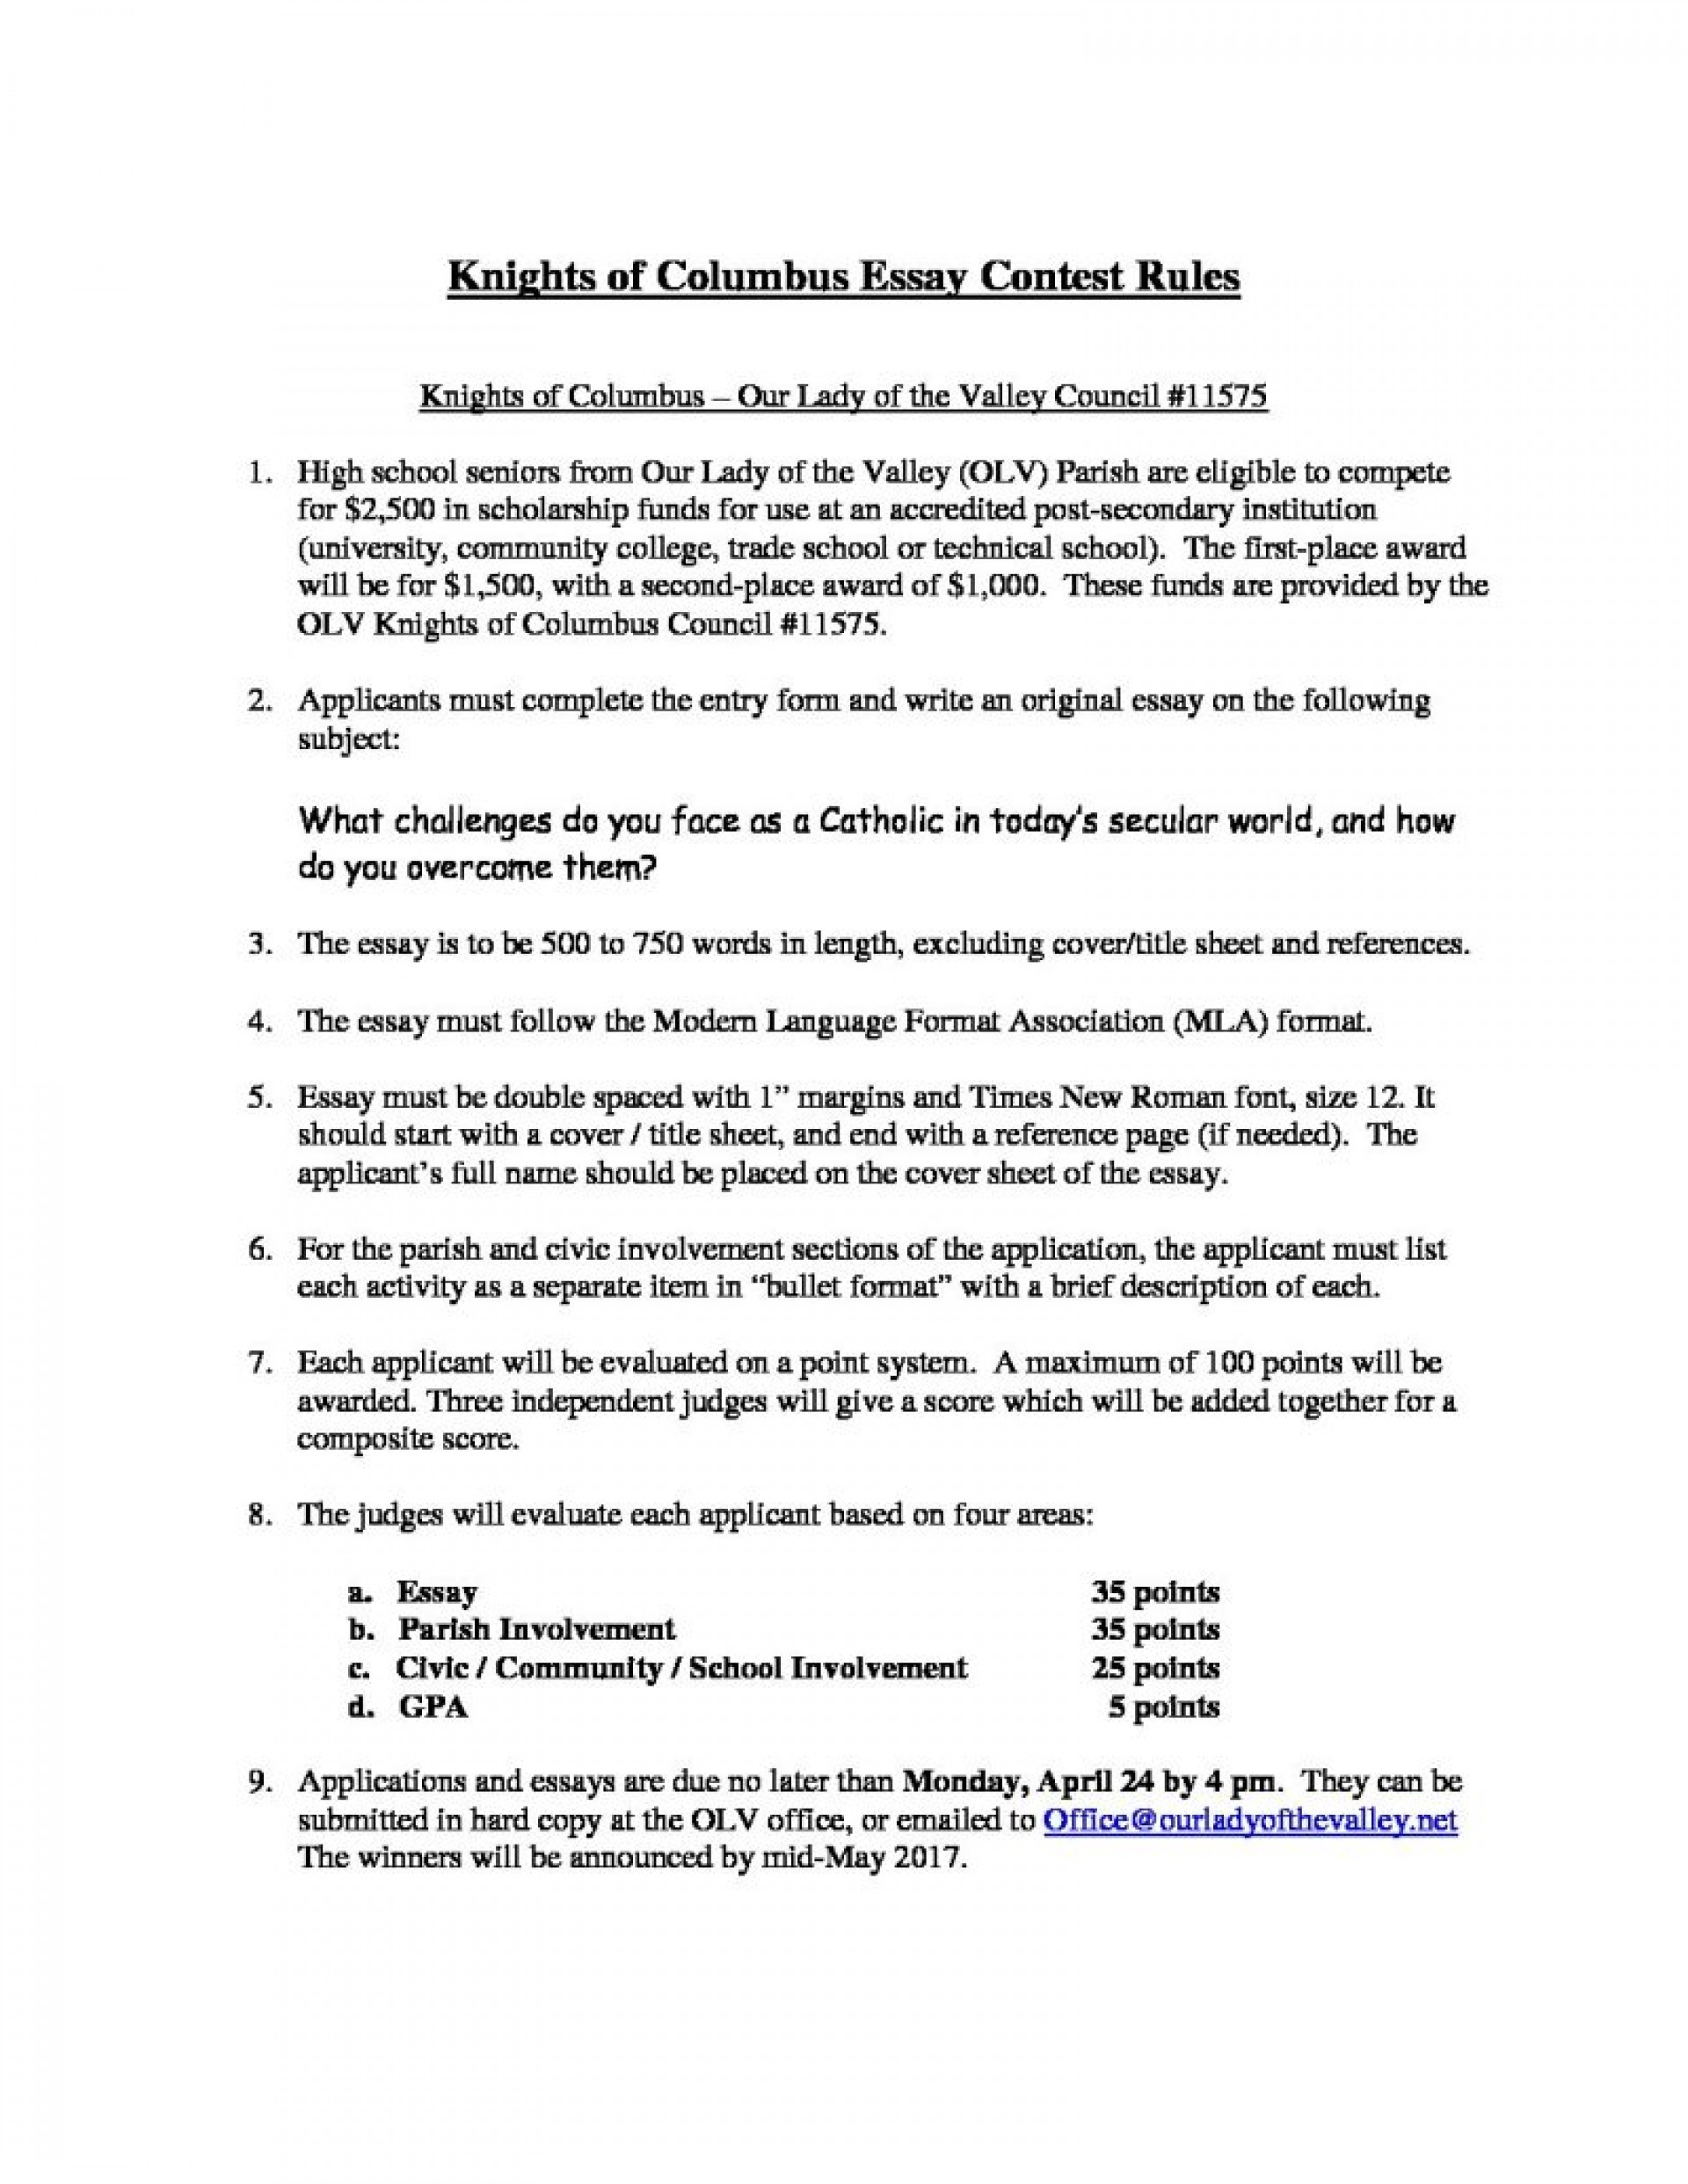 001 Essay Example From Failure To Promise Contest K Of Scholarship Rules And Application Unique 1920